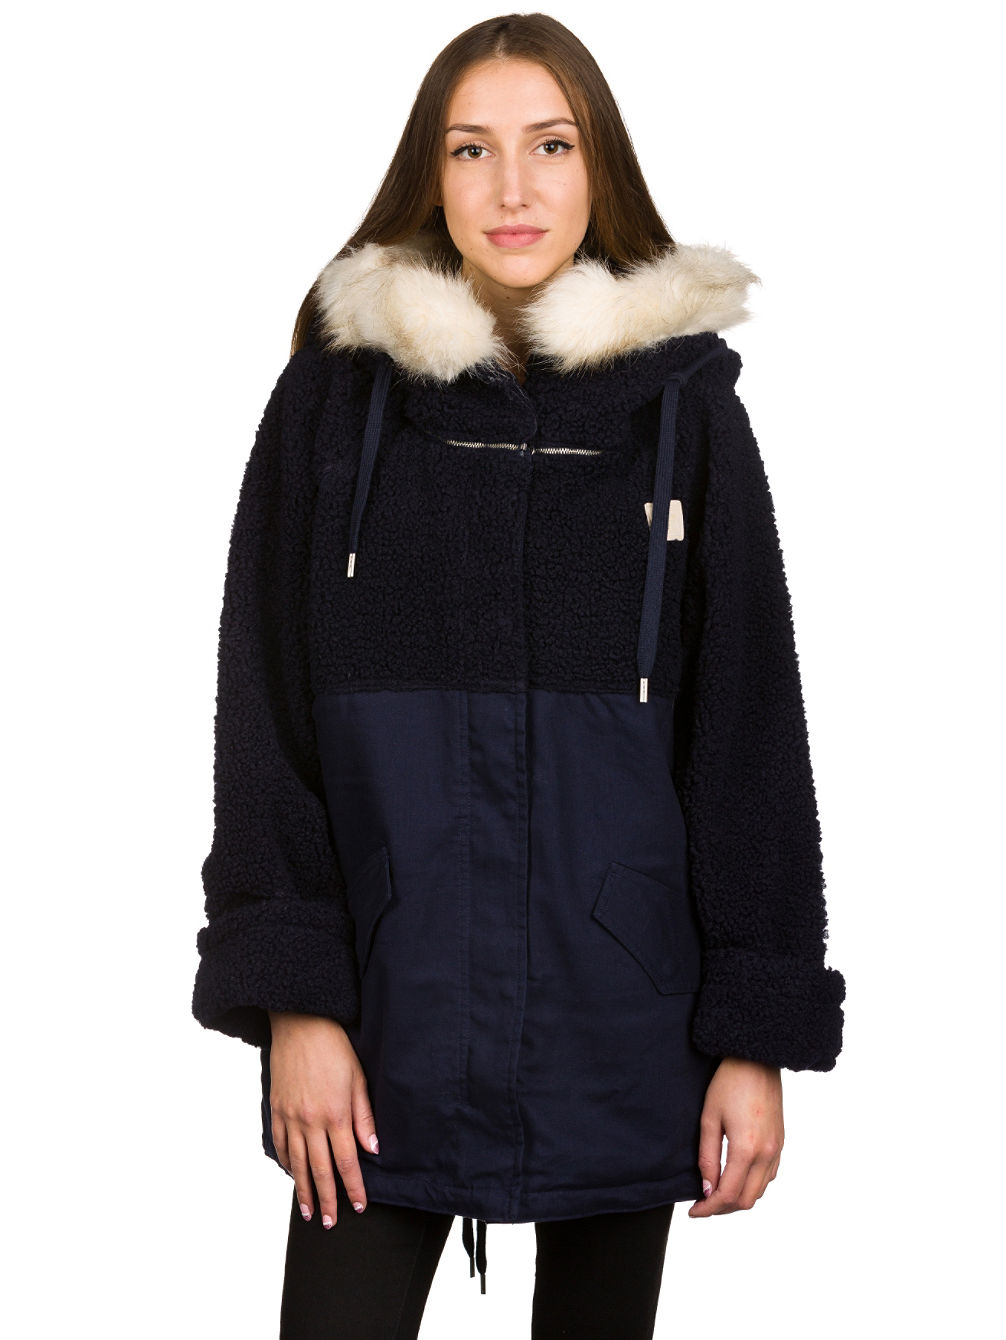 adidas-originals-wool-parka-coat